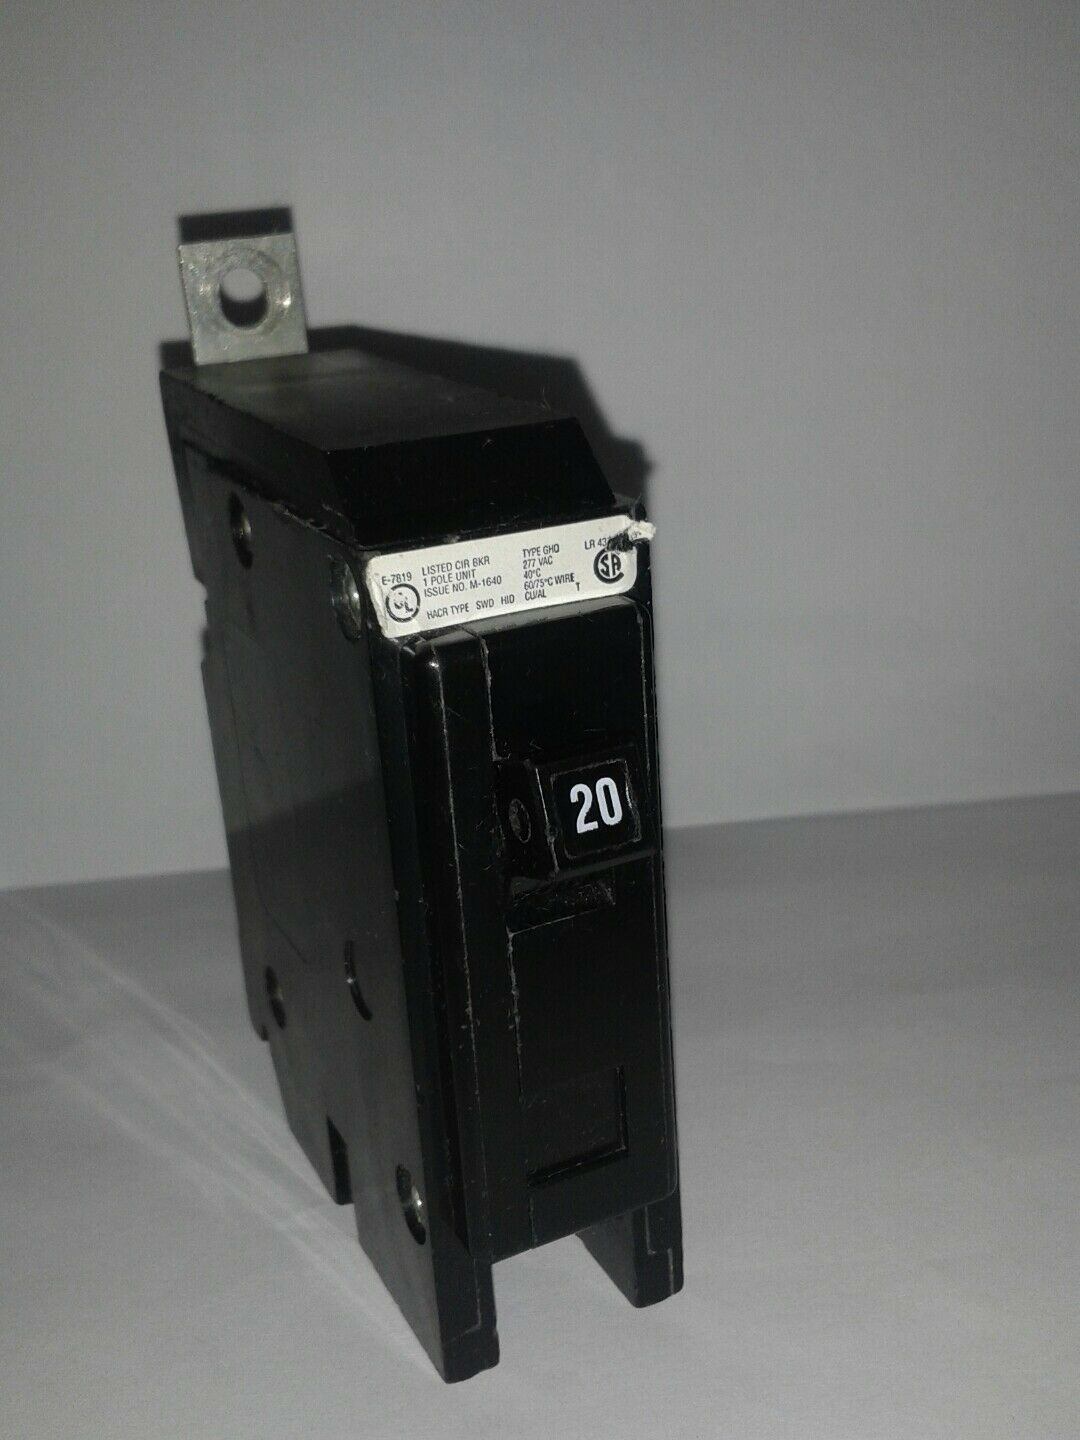 EATON GHQ1020 circuit breaker single pole 277V 20amps